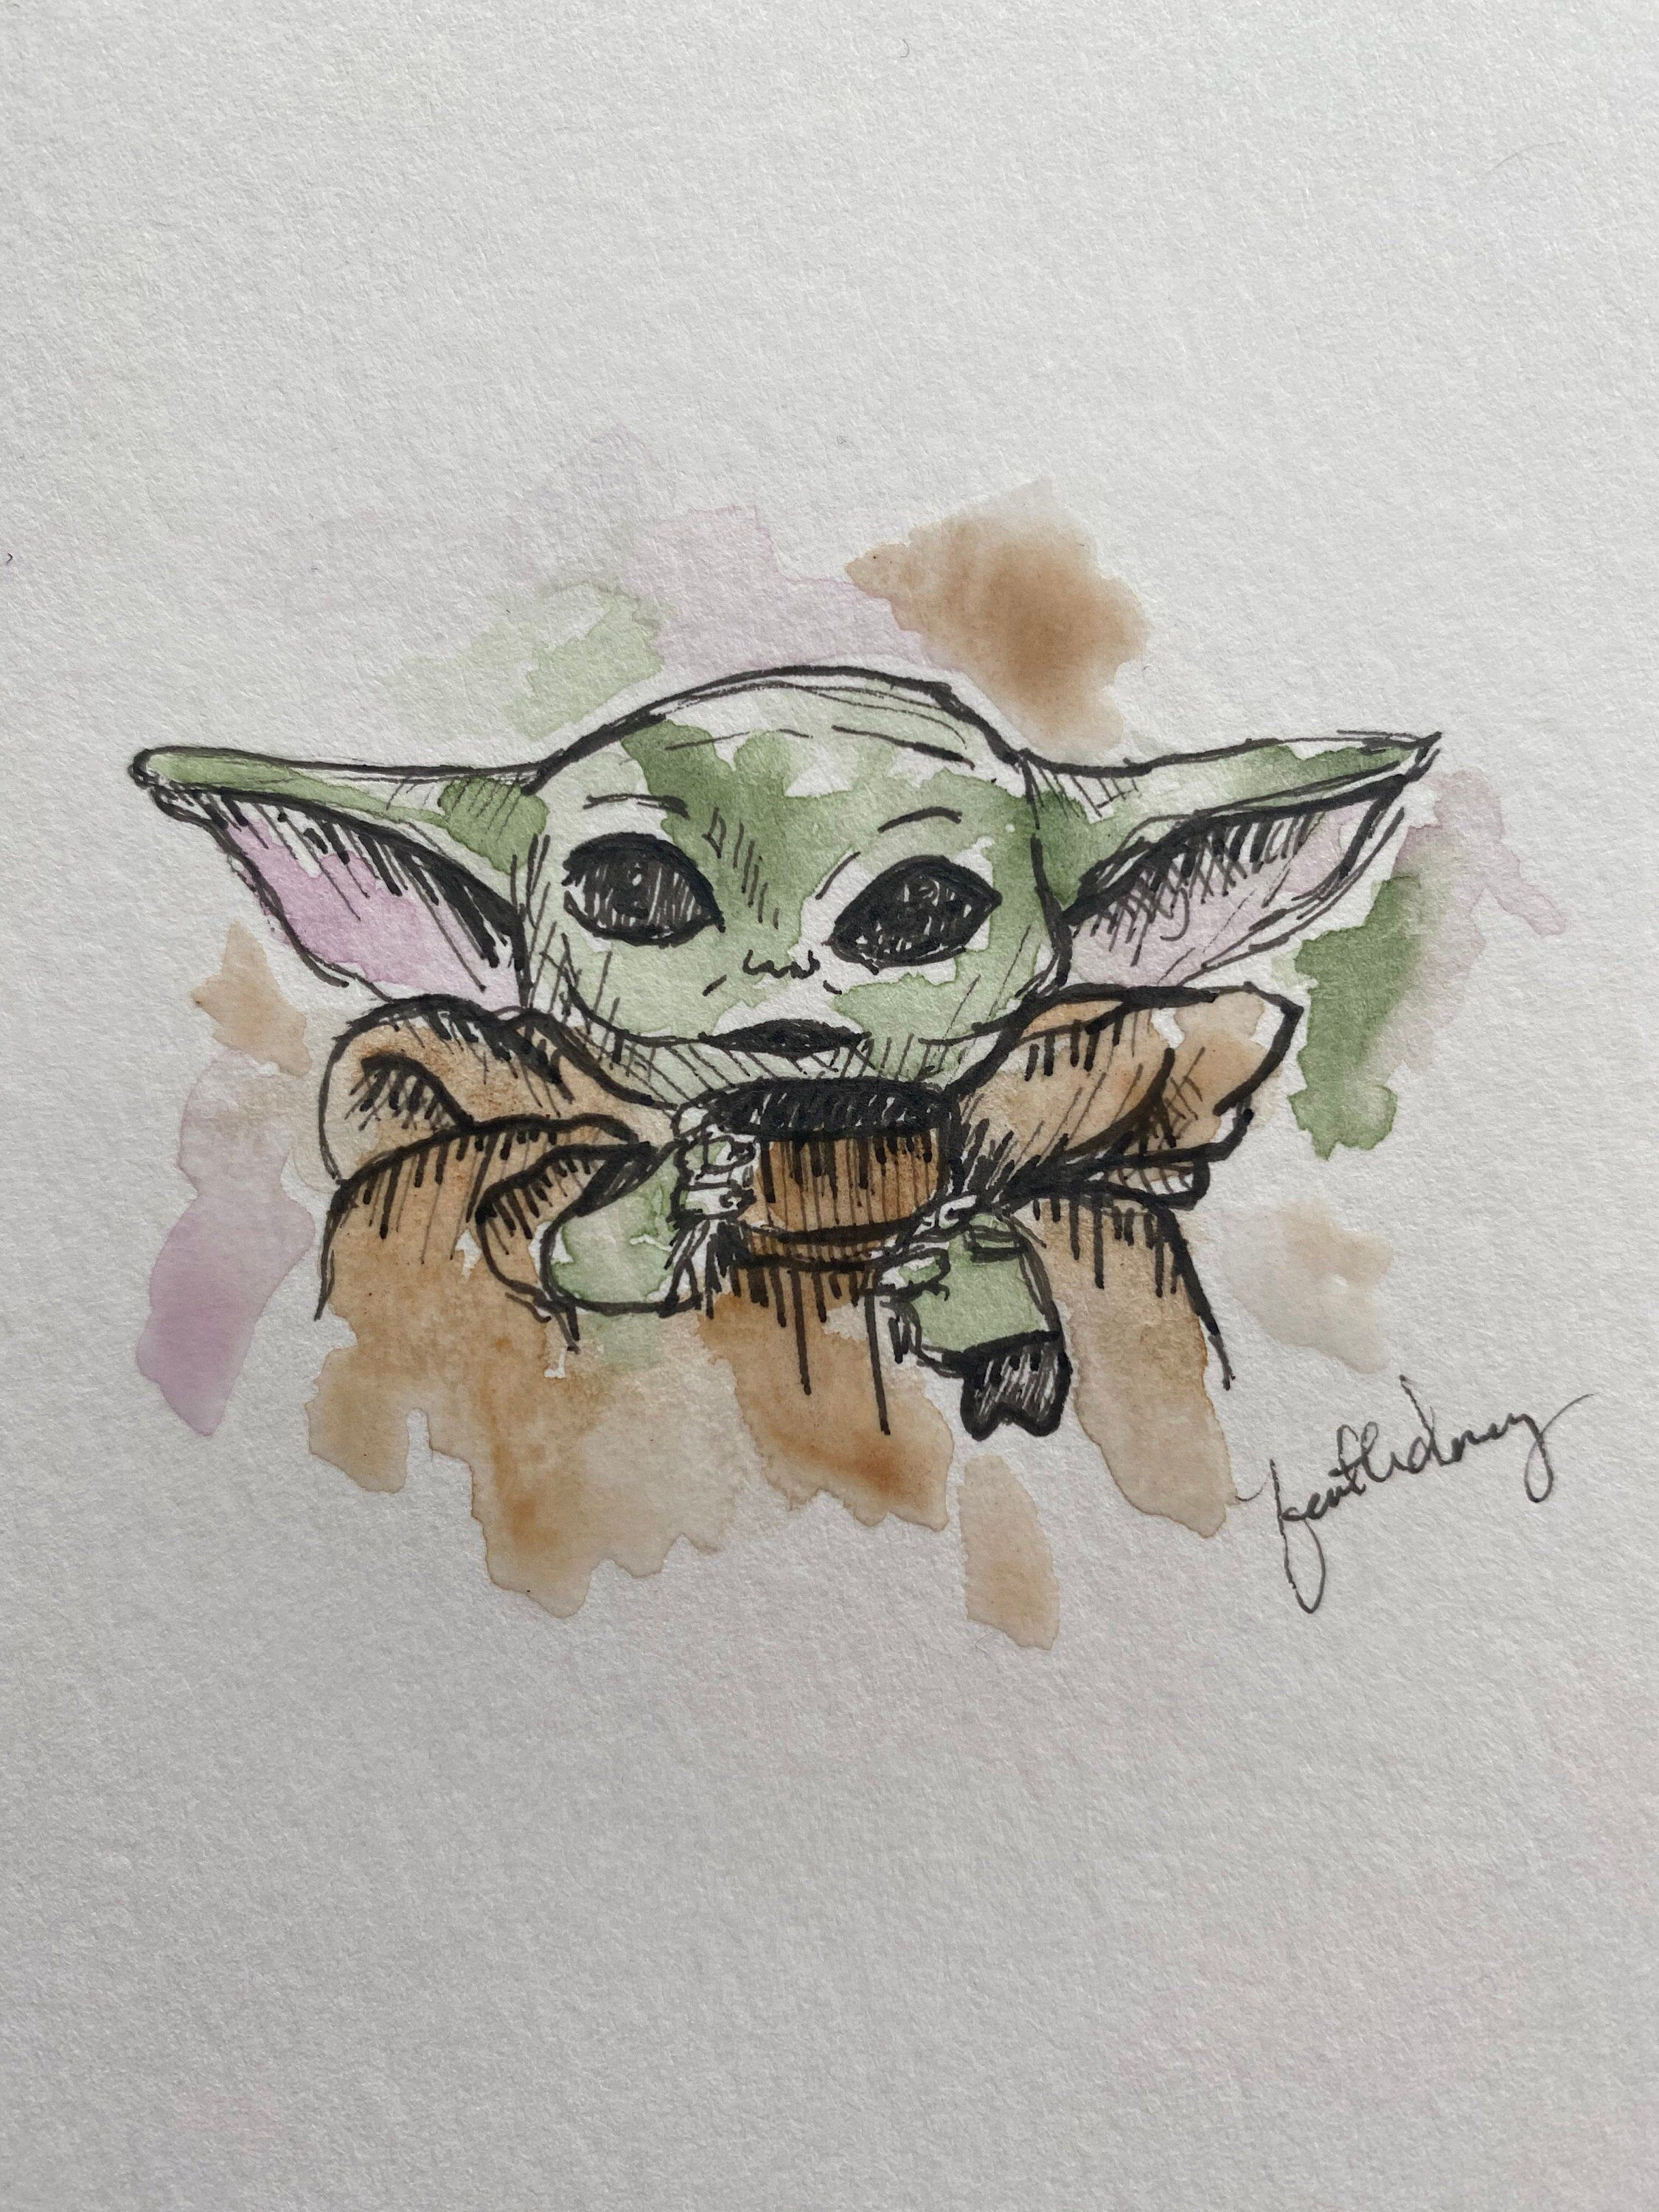 Baby Yoda Watercolor Painting Print By Artfromfaith On Etsy Https Www Etsy Com Listing 760896851 Baby Yoda Waterco Watercolor Paintings Star Wars Artwork Art